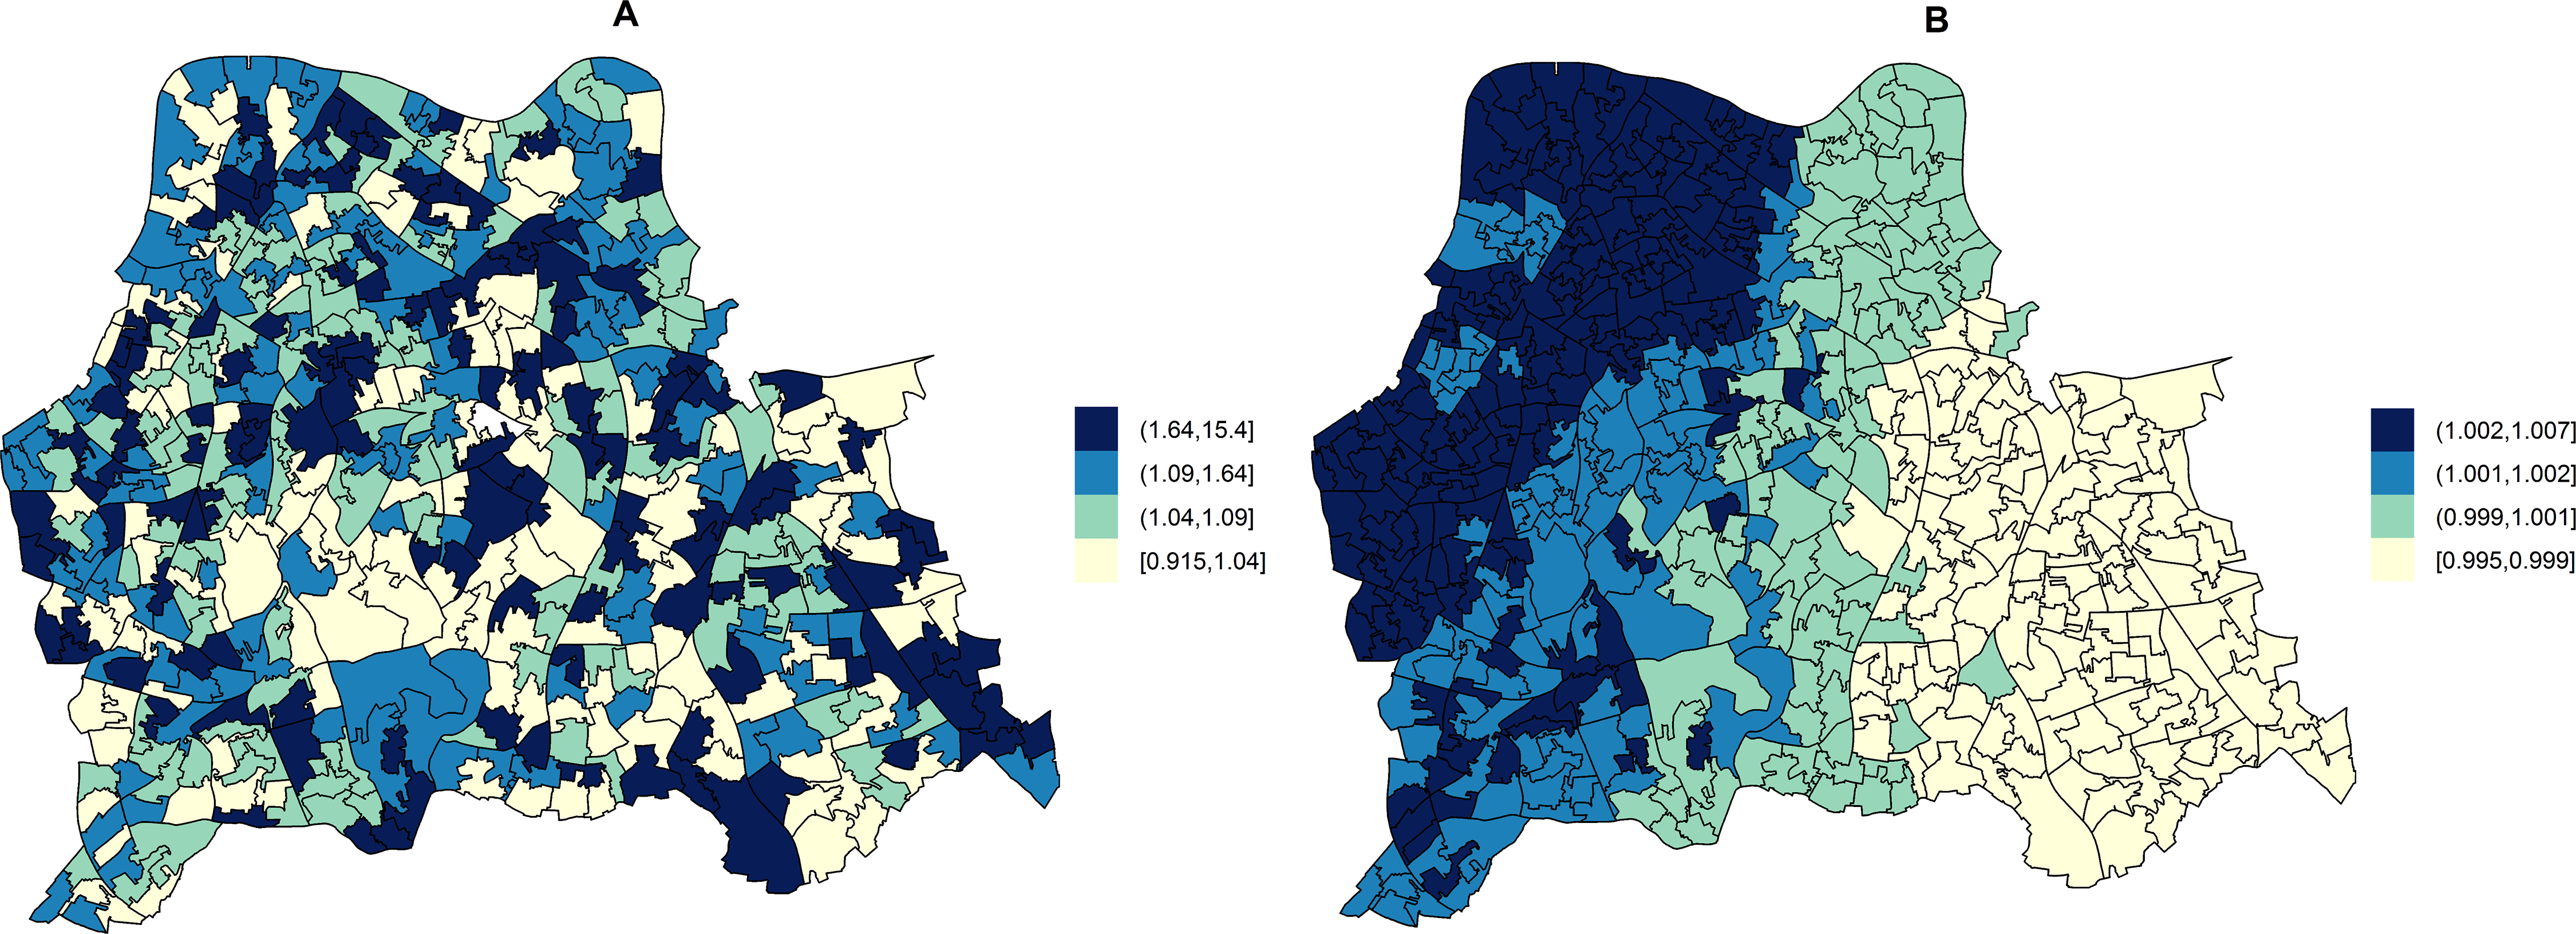 Maps for RR of HA- and CA-MRSA in LSOAs compared to the whole catchment area in disease mapping (unadjusted) models.